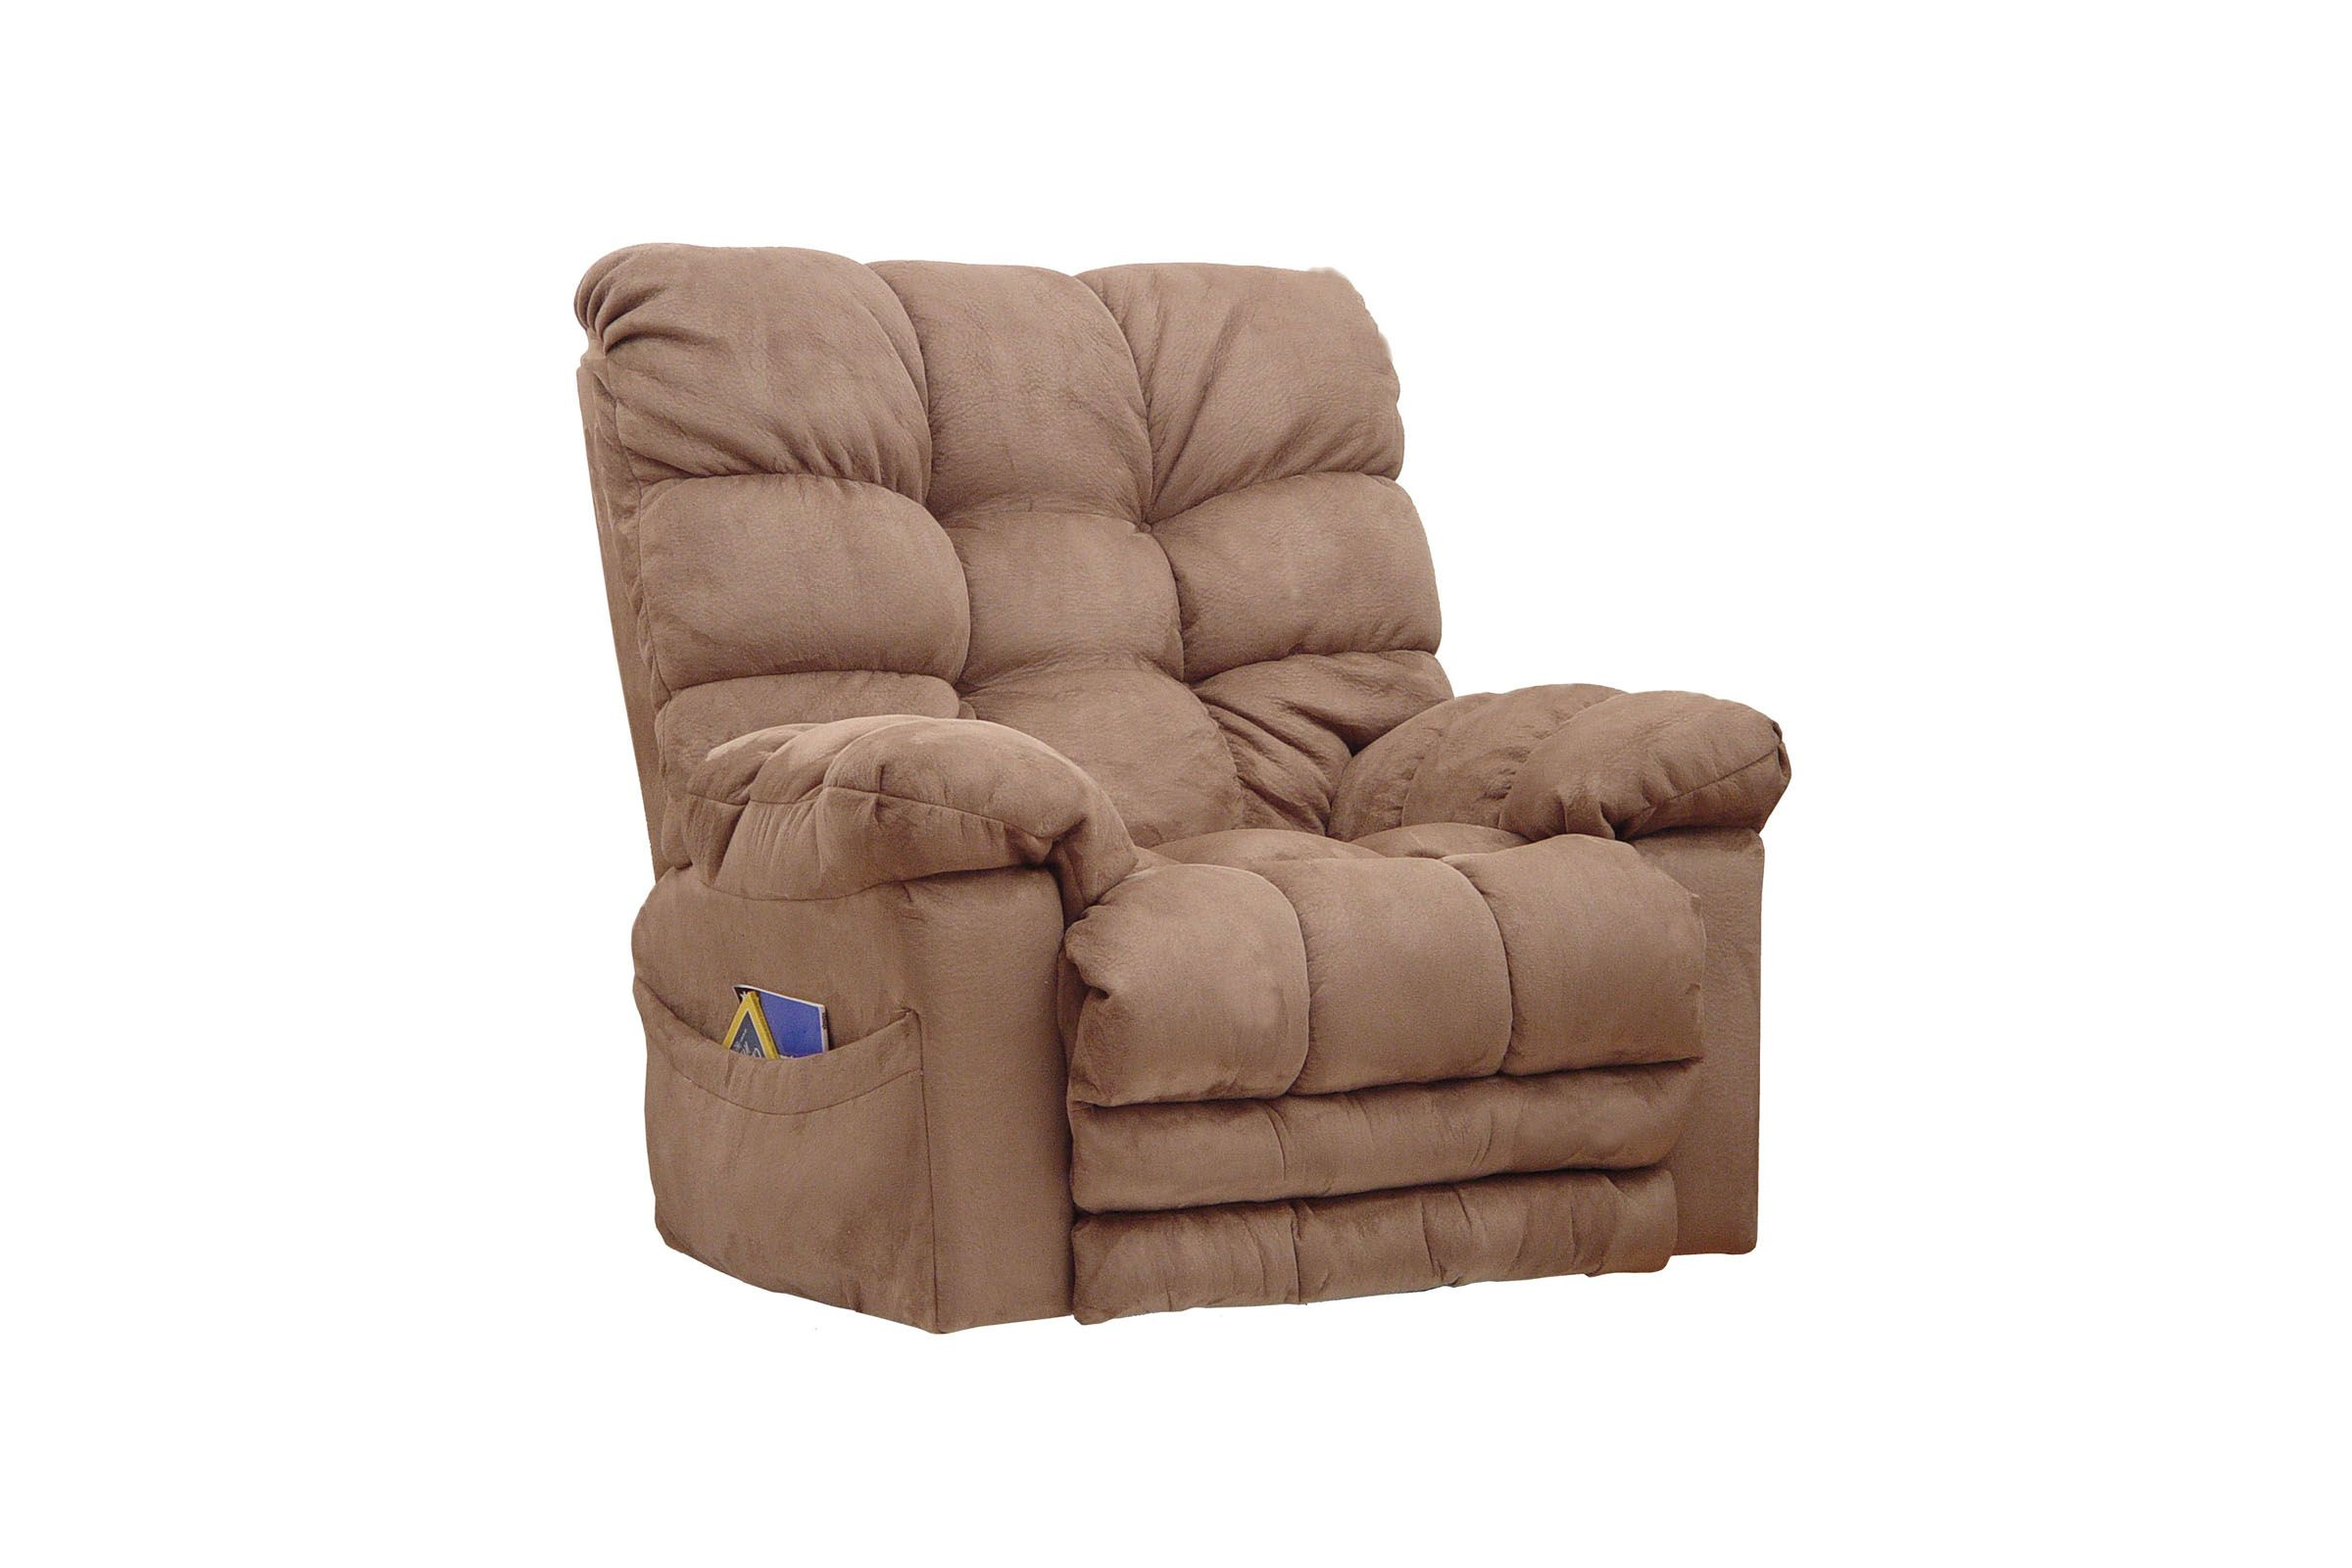 Rocker recliner catnapper voyager sectional with lay flat for Catnapper teddy bear chaise recliner